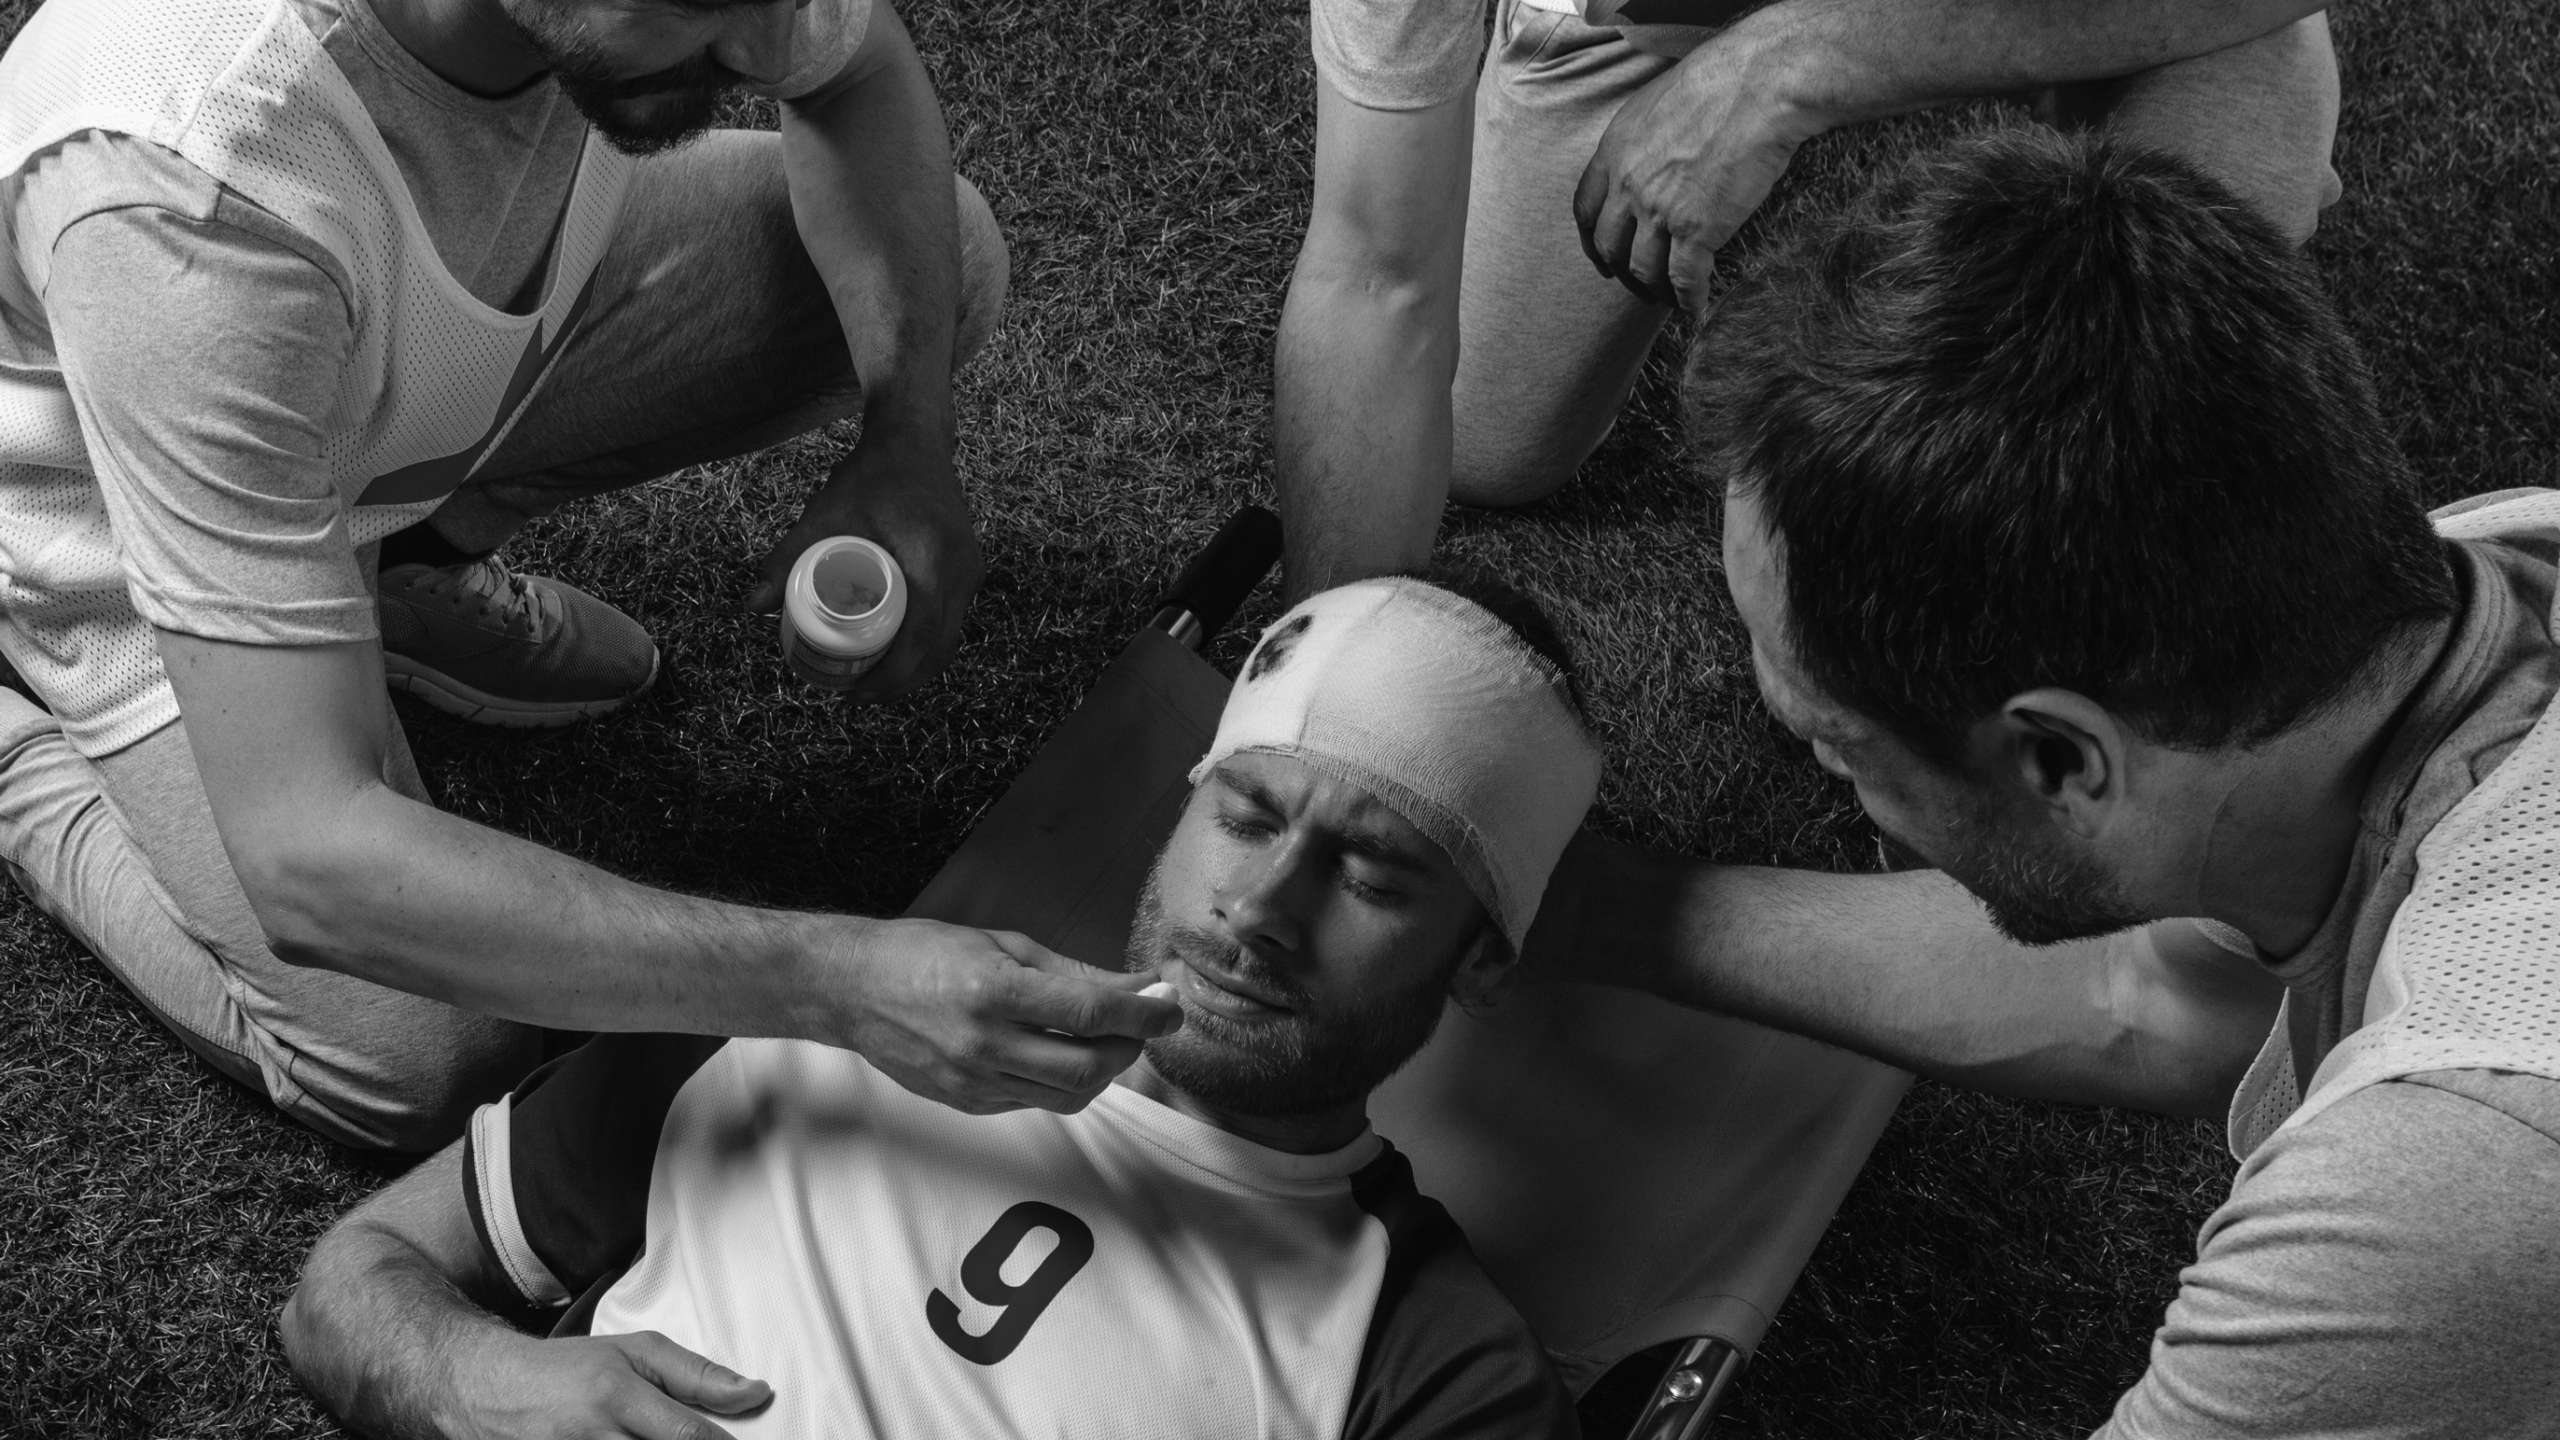 A black and white photo of a footballer with a head injury on a stretcher